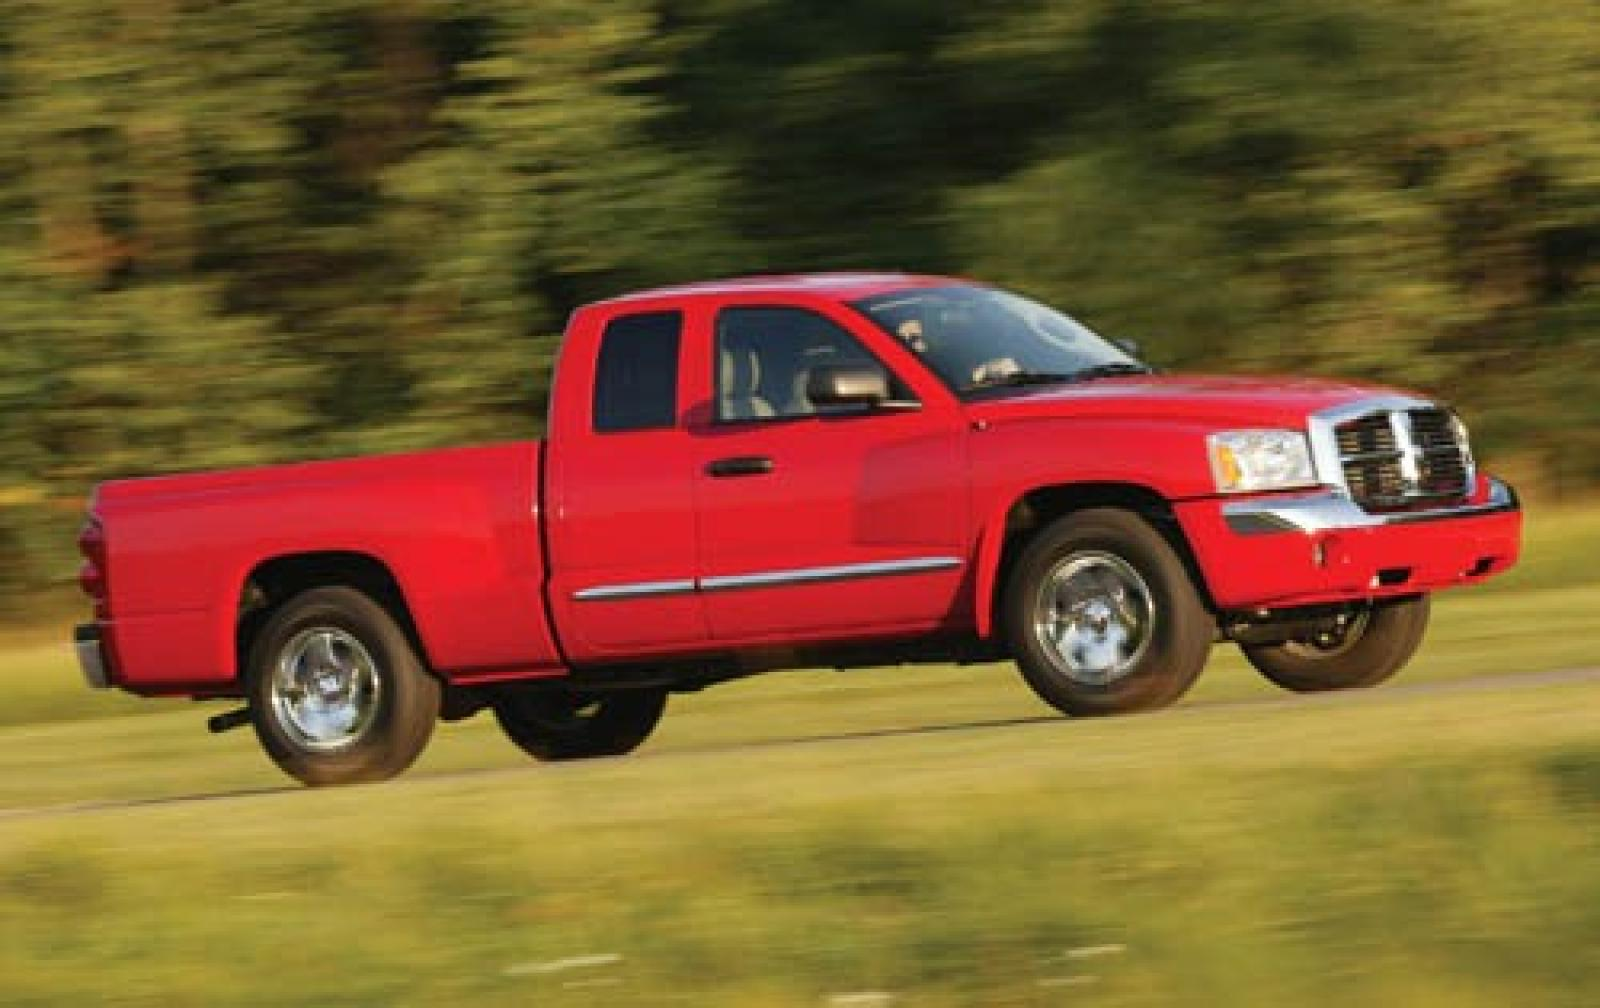 800 1024 1280 1600 origin 2006 dodge dakota